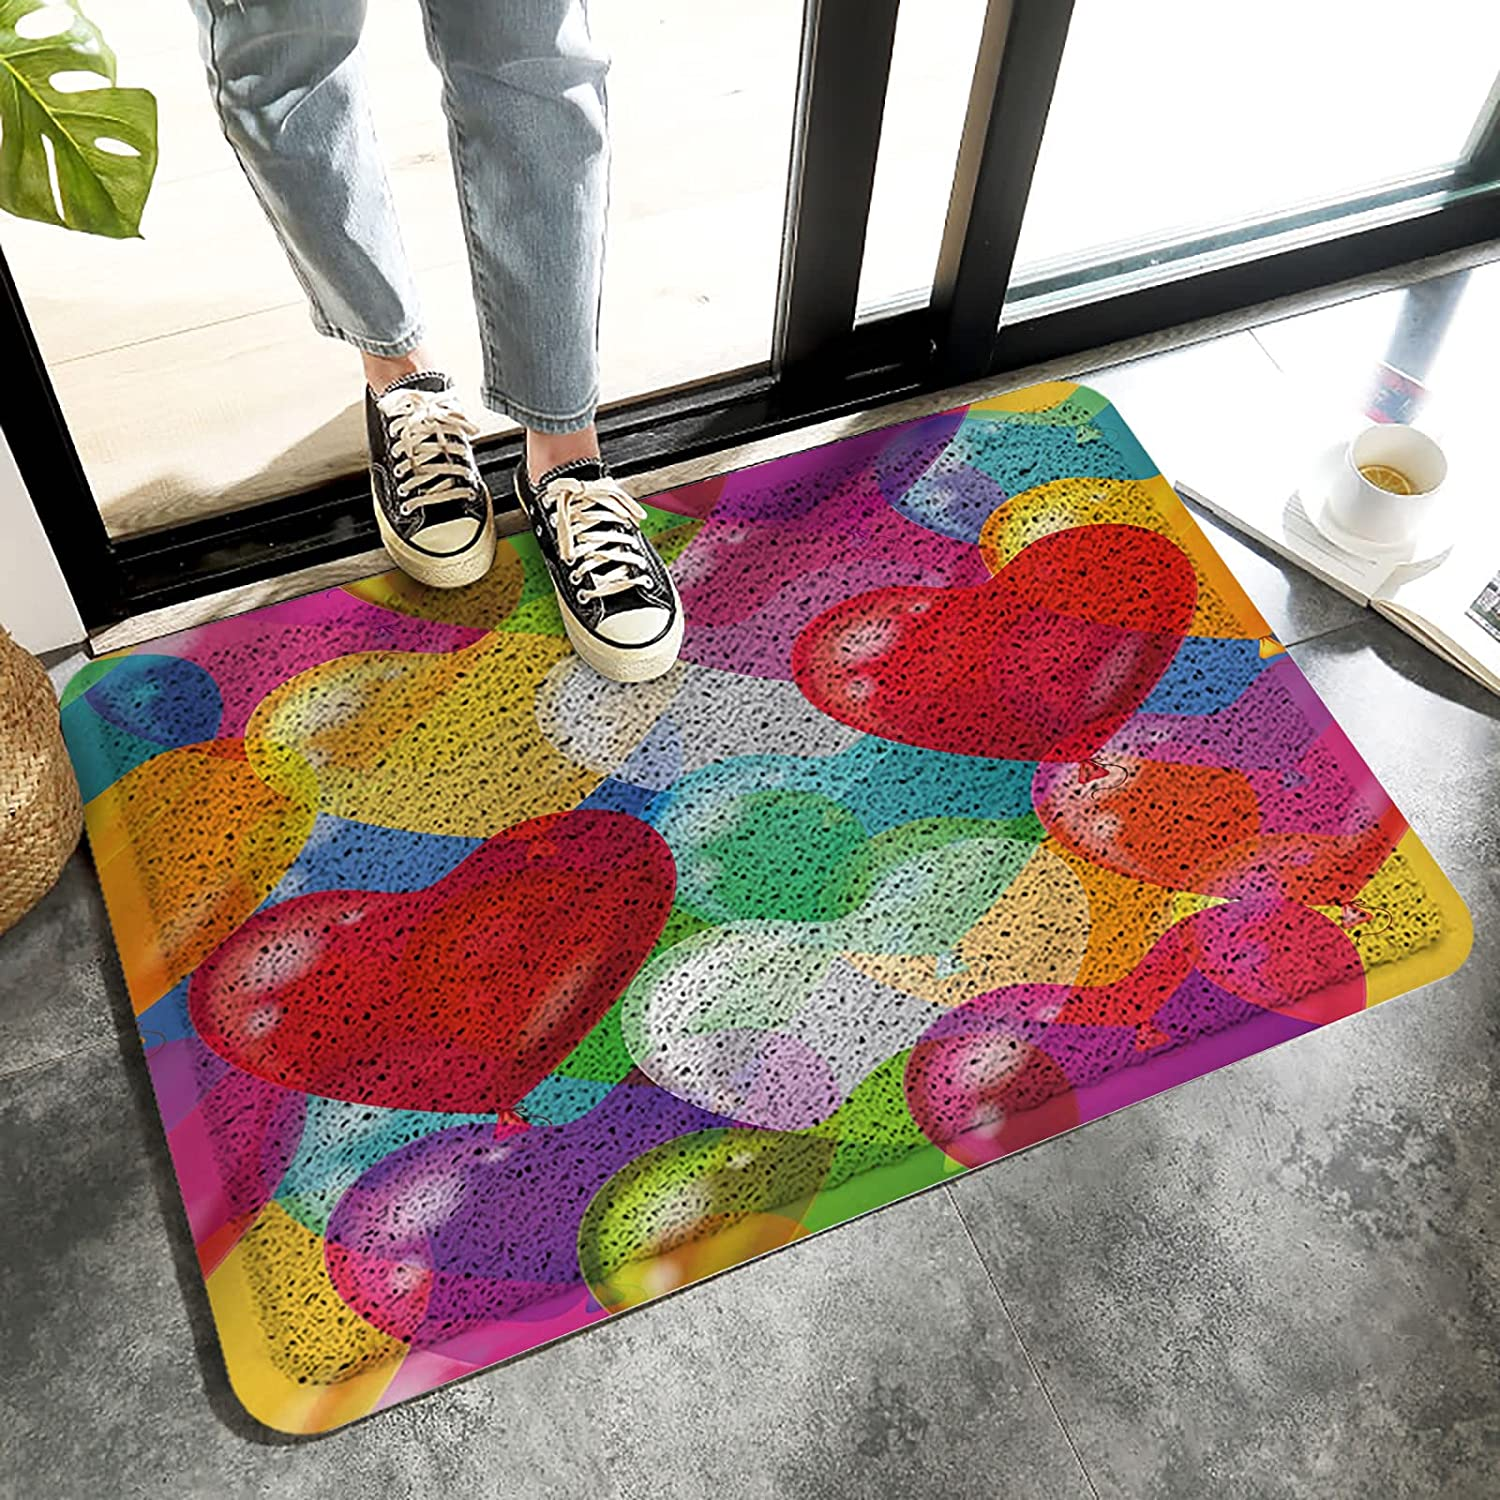 LBHAUSE Entrance Bombing new Reservation work Doormat Indoor Wire Mats Colorful Ba Ring Foot